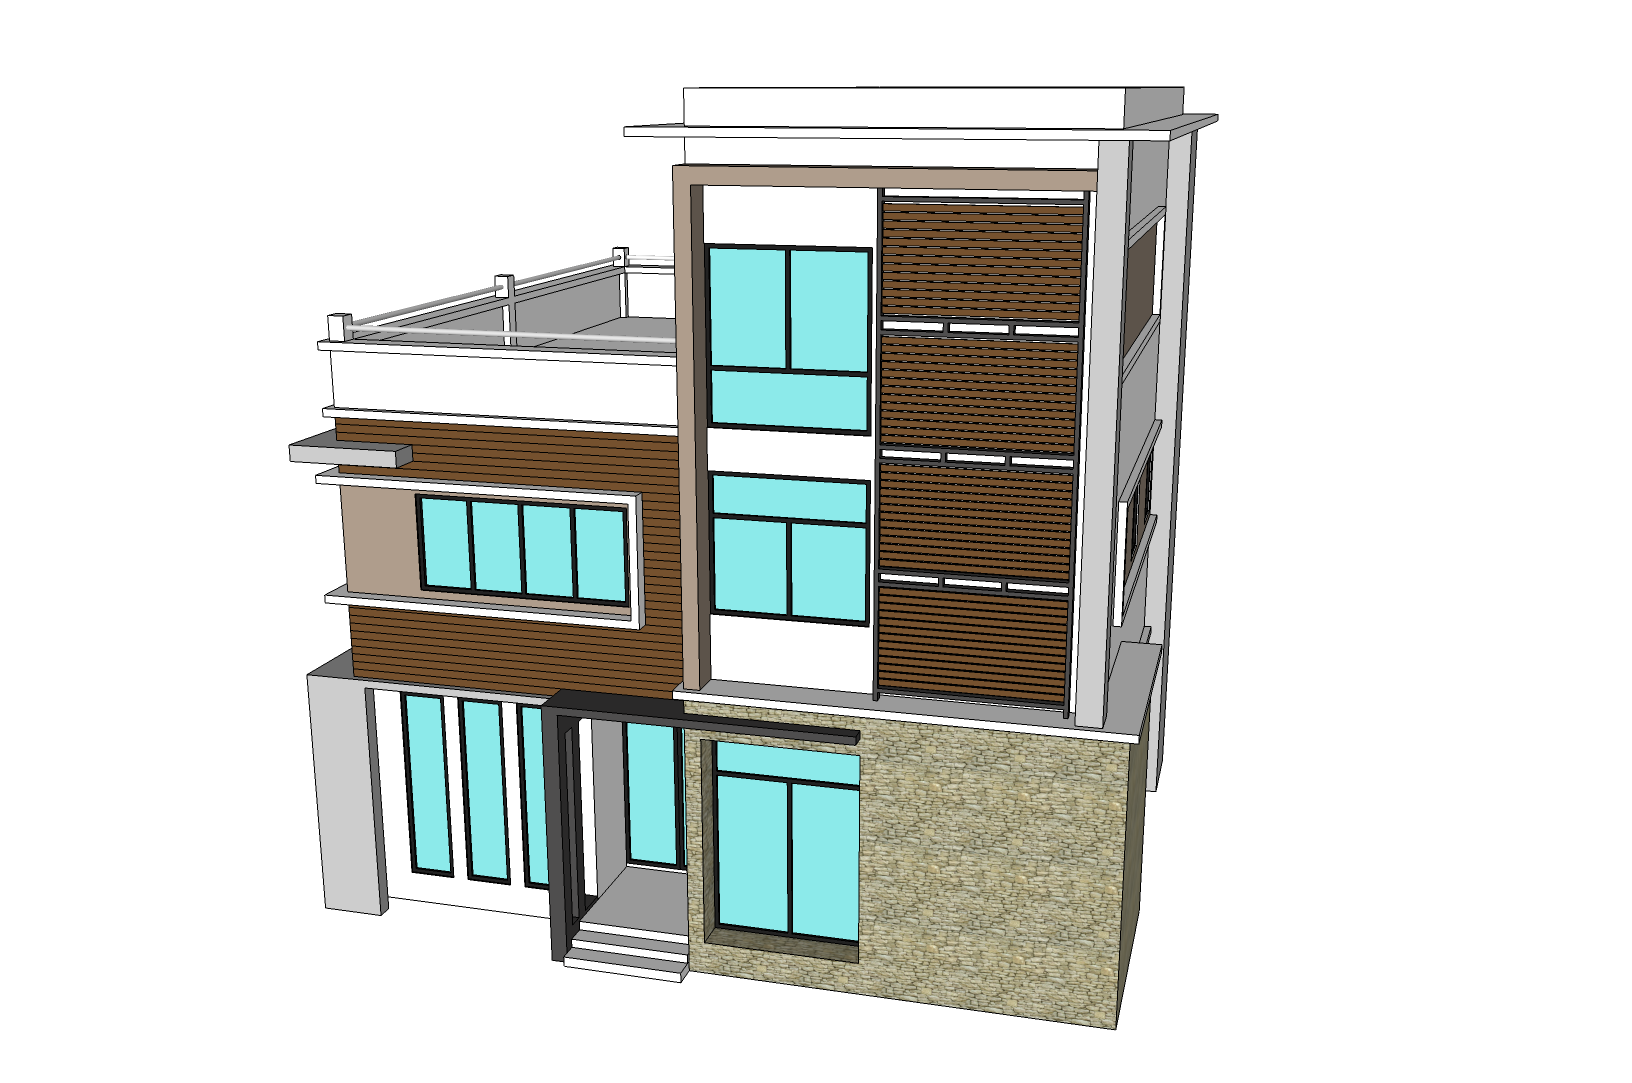 3 storey town house office nkd for Design of building house